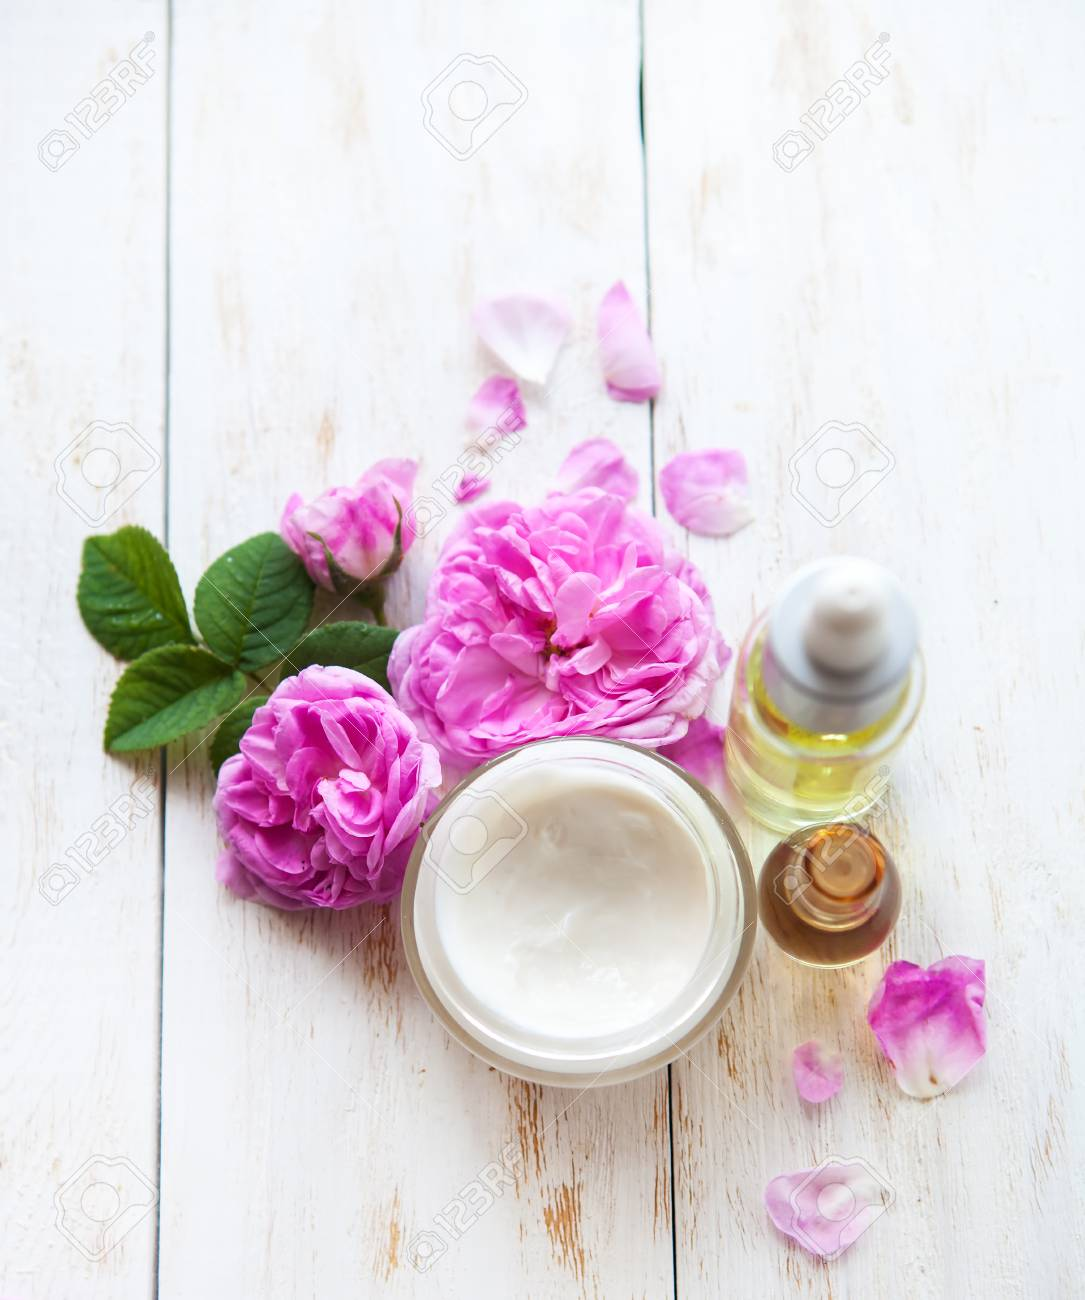 Picture Candles Flower On Wooden Table View Flat Lay Flower Oil Target Flower Oil Pain 81224830 Spa Set Massage Oil Towel Sea Salt houzz-03 White Flower Oil